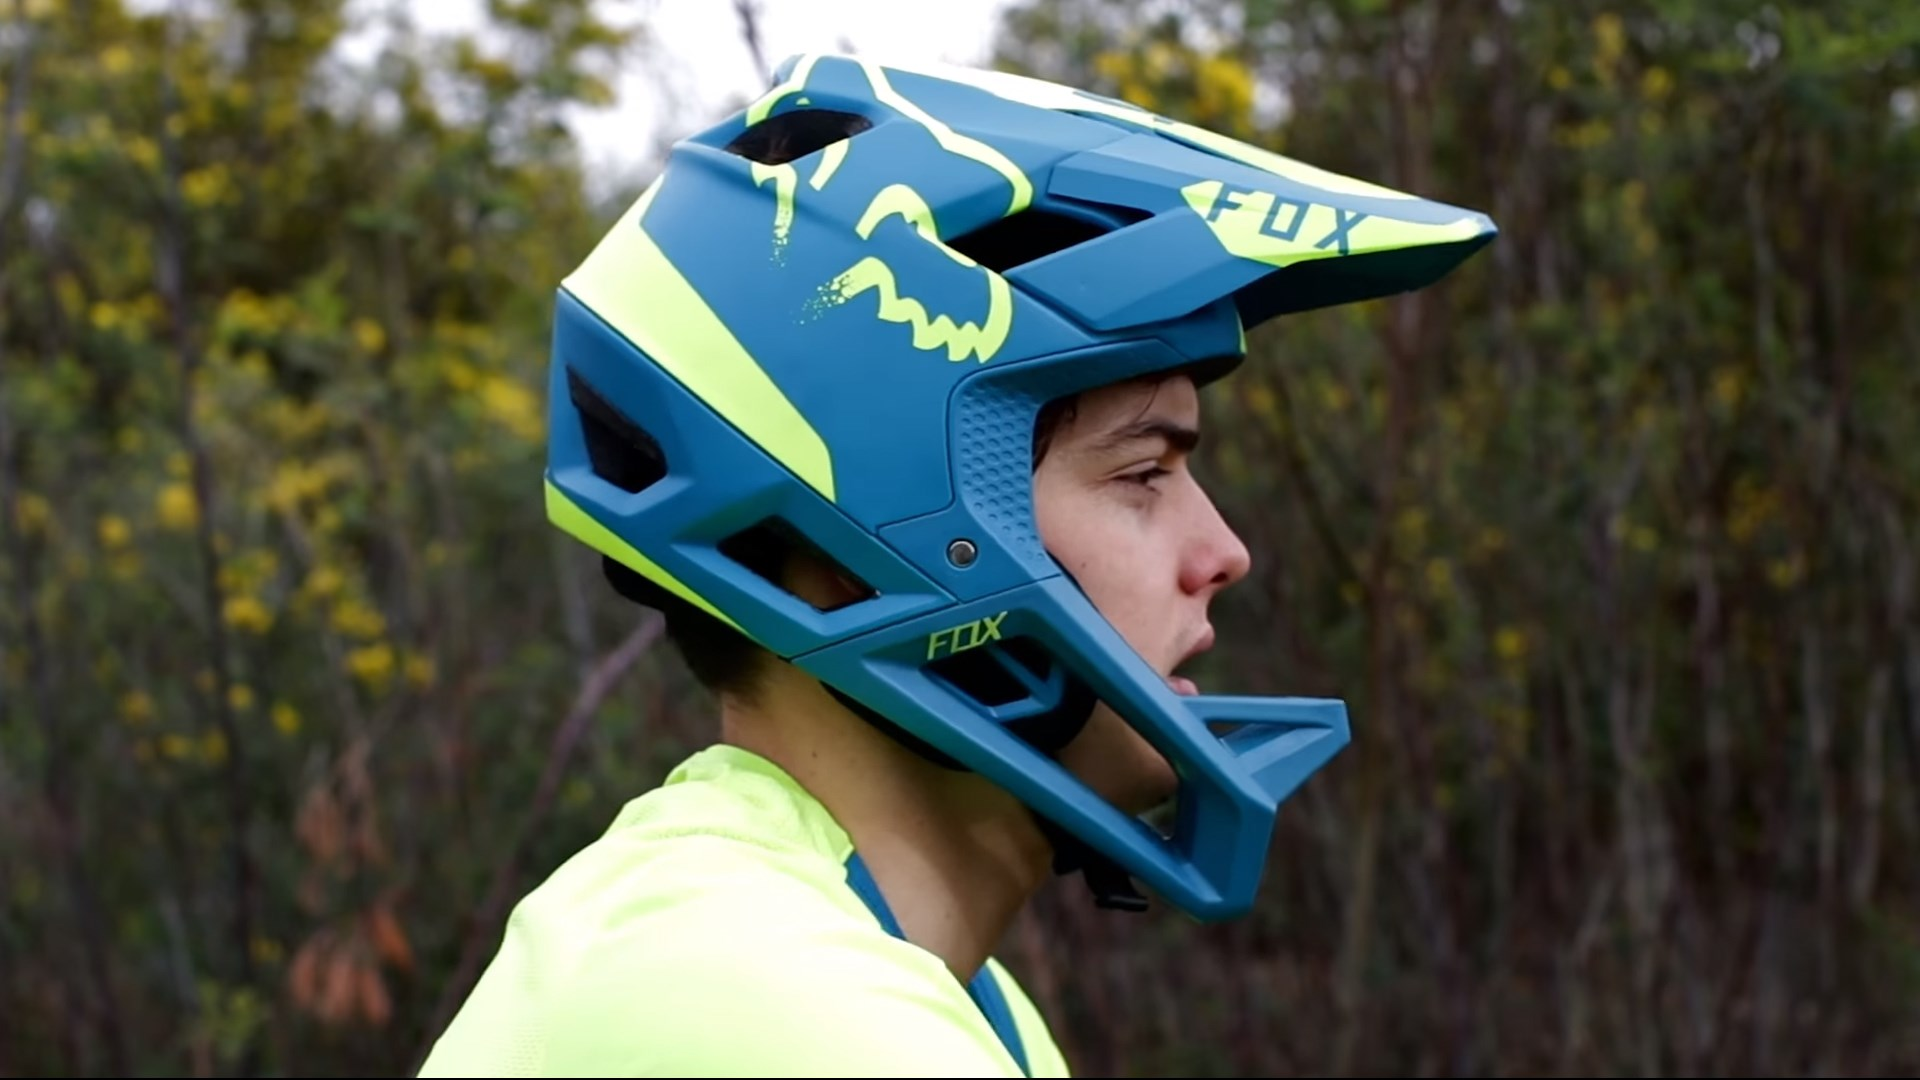 FOX MTB | PROFRAME | RIDE. WIDE OPEN. | FEATURING LORIS VERGIER